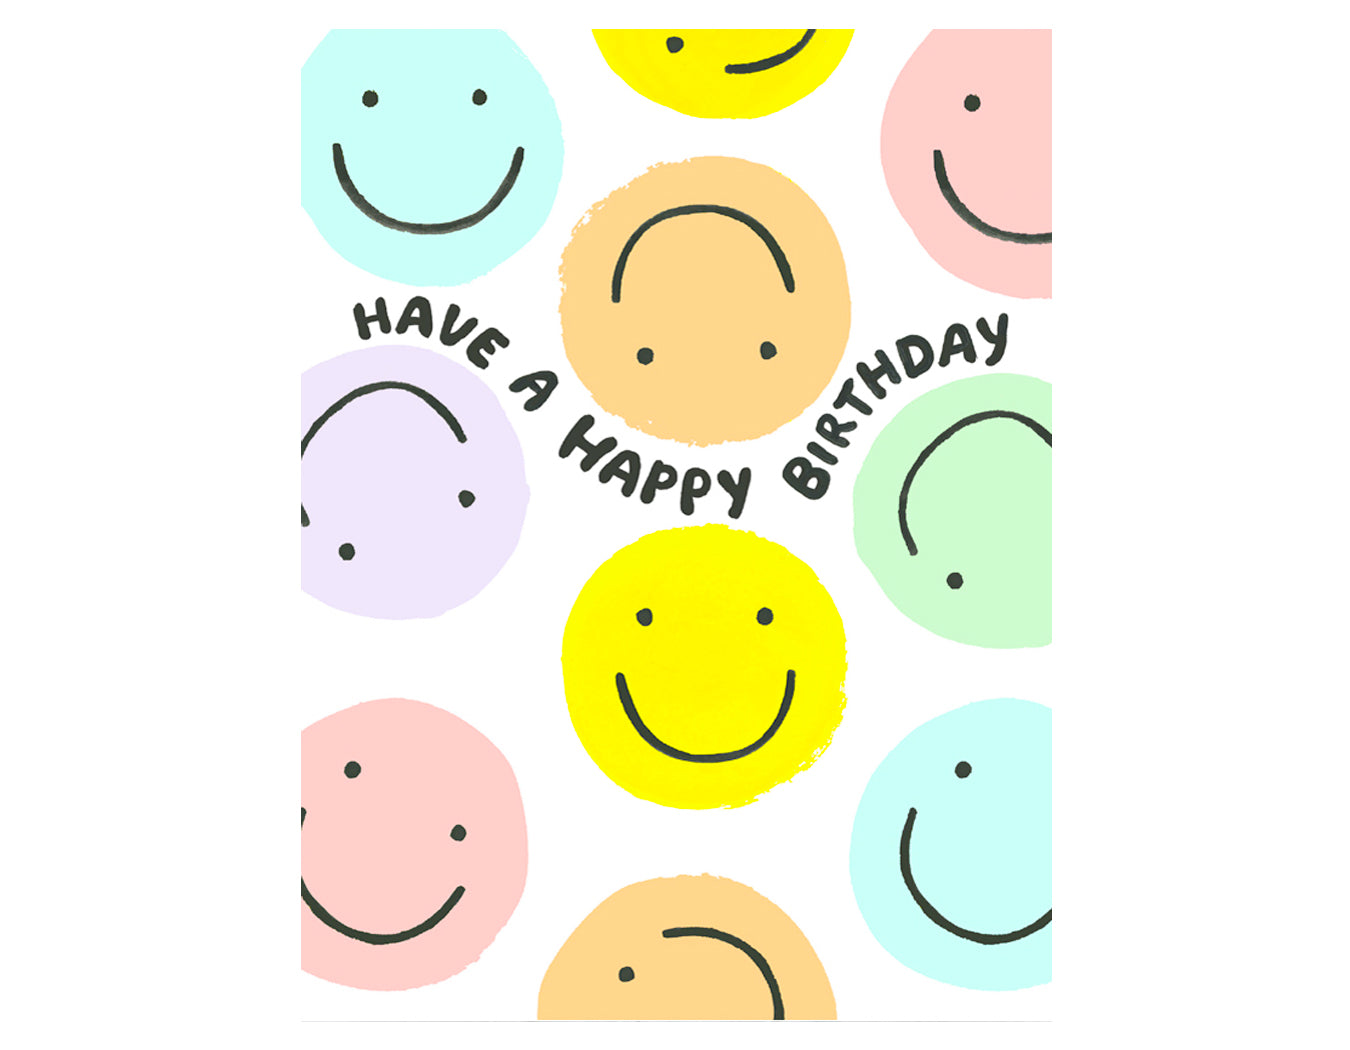 pastel smiley faces all over card text reads have a happy birthday